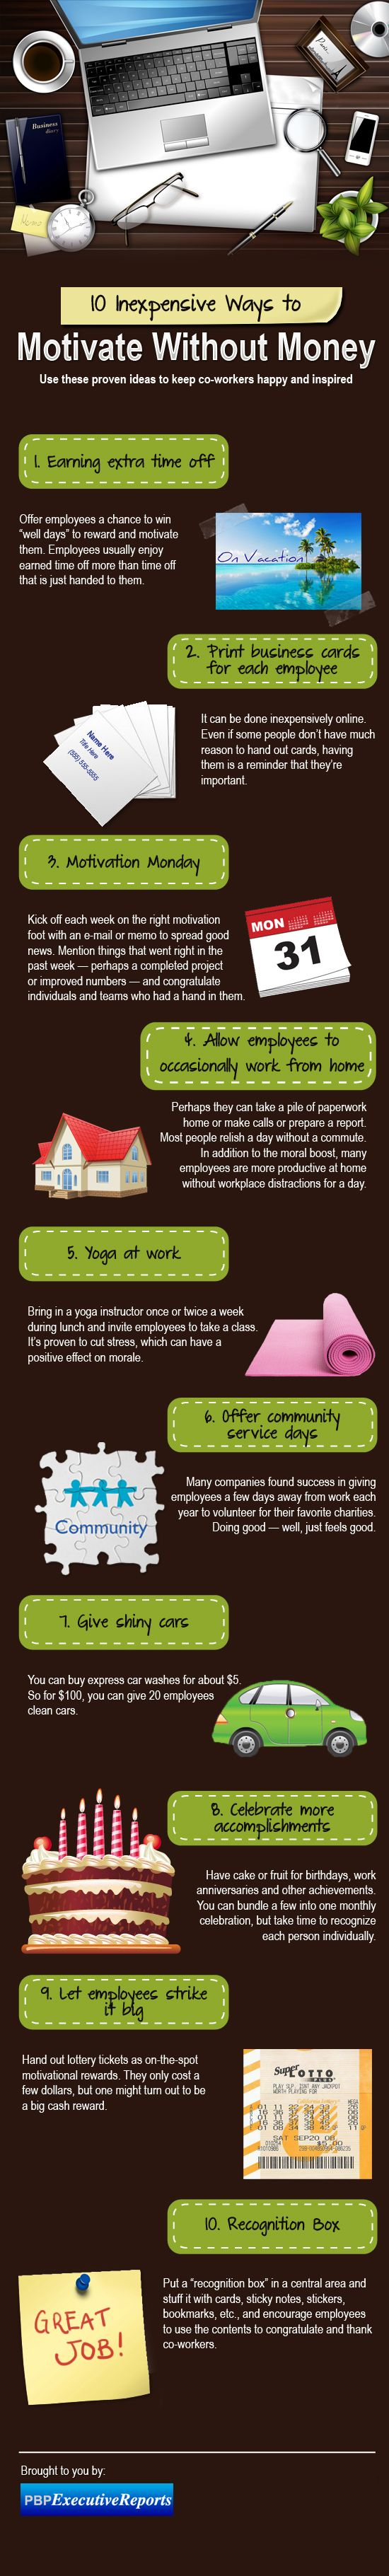 Infographic: 10 inexpensive ways to motivate employees